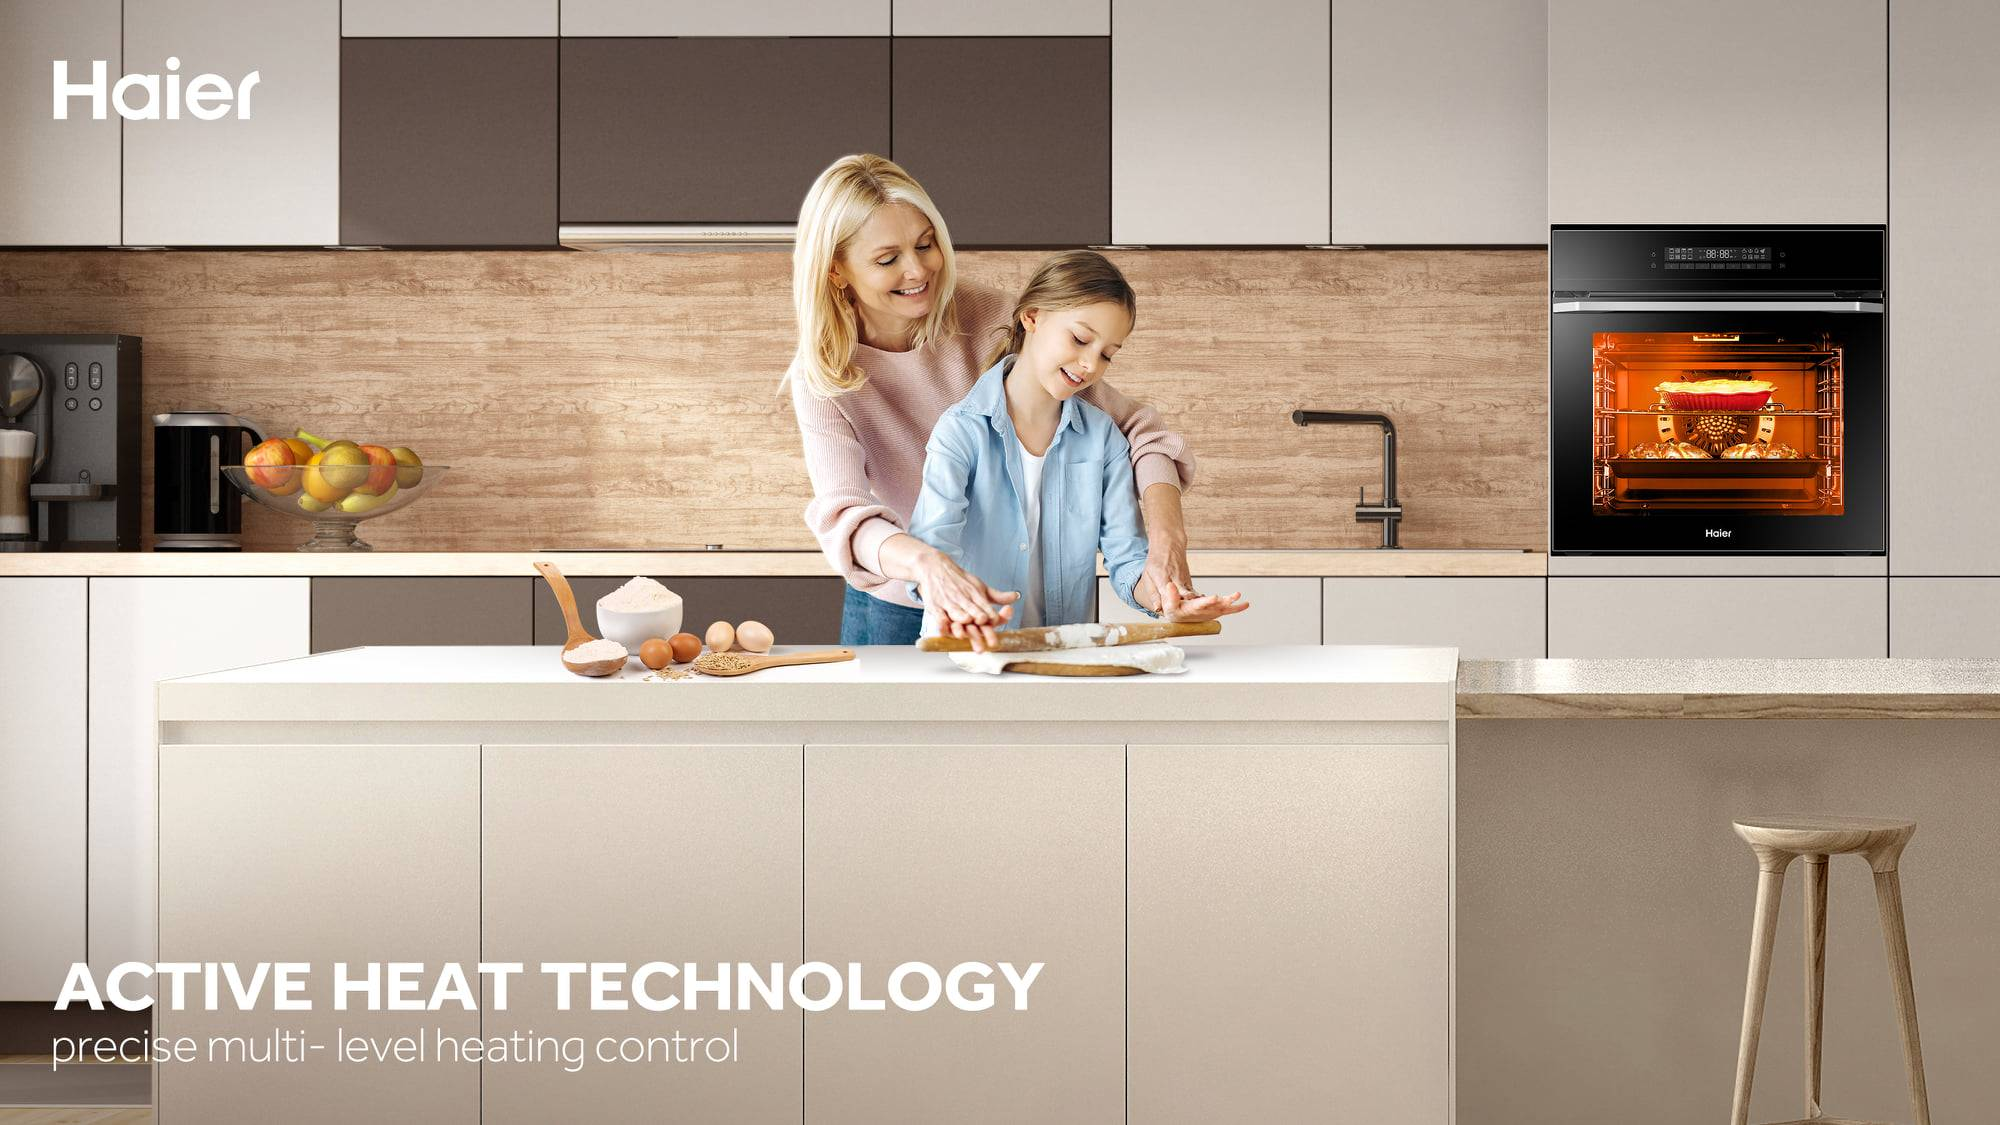 Good temperature control performance of Haier ovens guarantees your cooking experience.